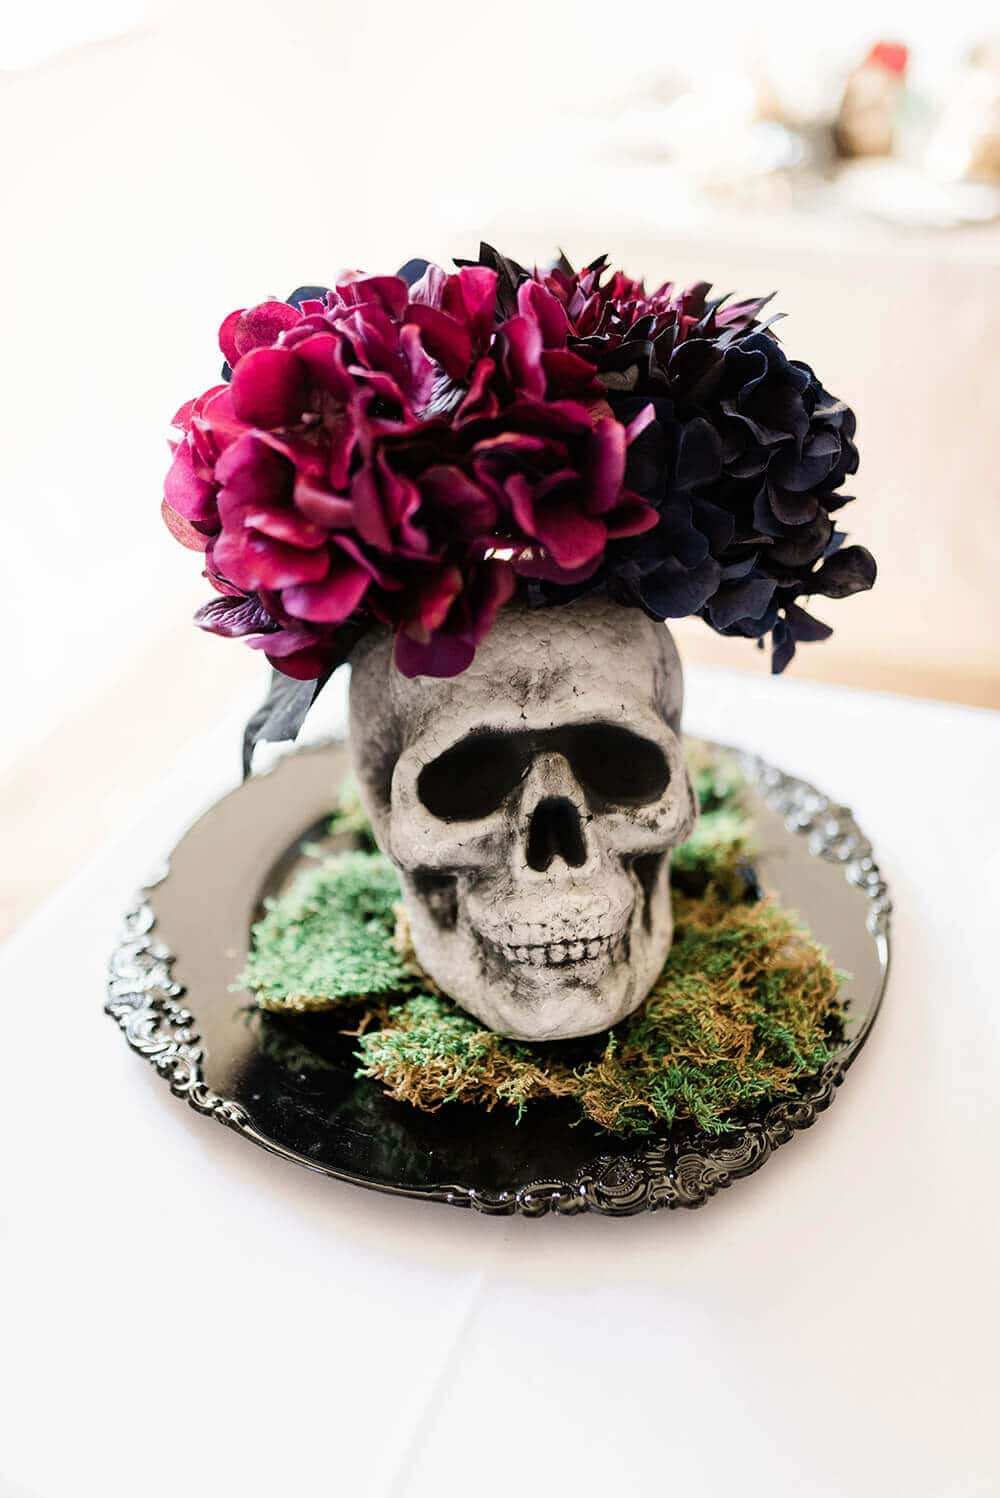 Finished Floral Skull Centerpiece on black charger and bed of moss